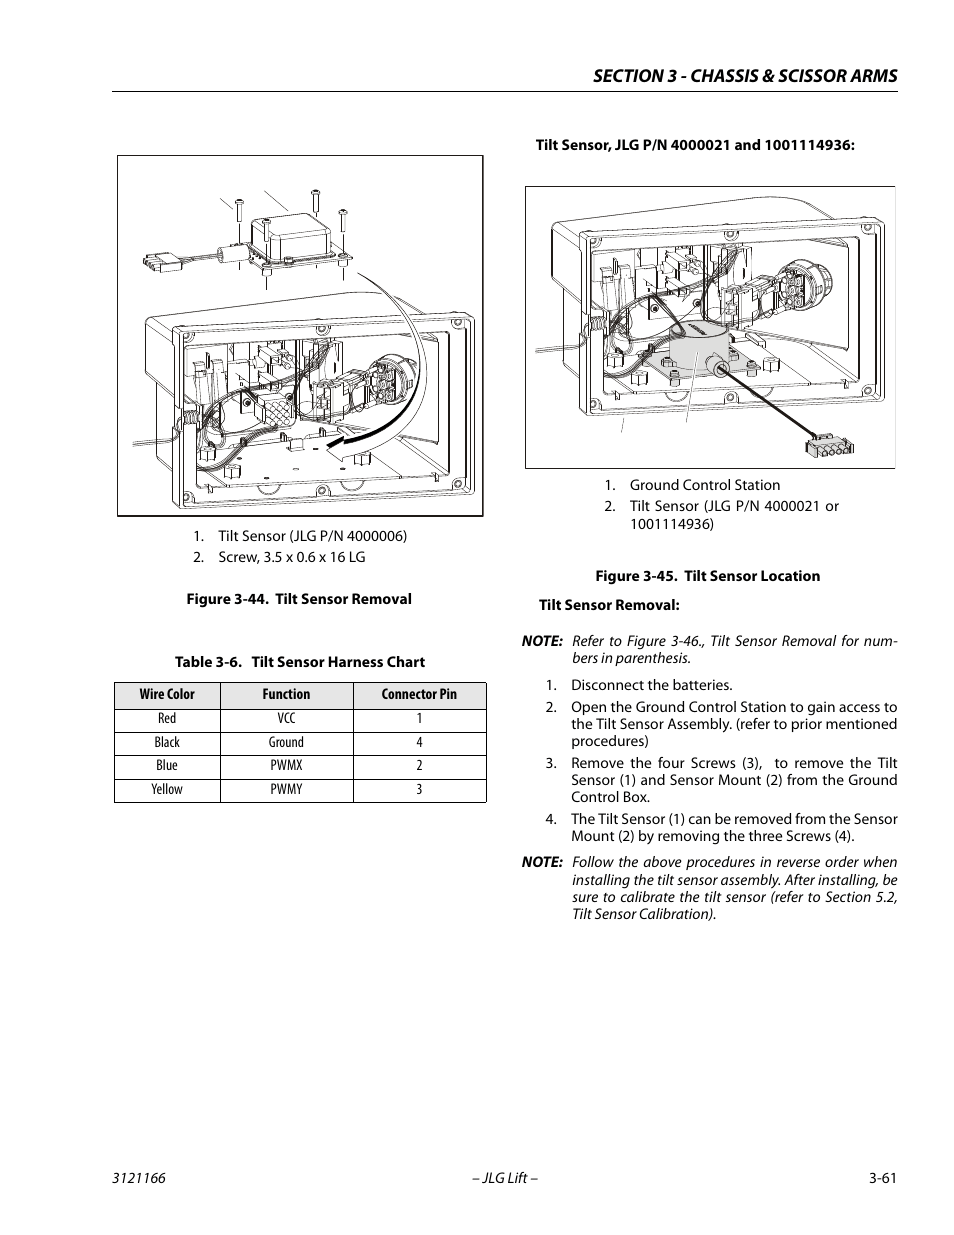 medium resolution of tilt sensor removal 61 tilt sensor location 61 tilt sensor harness chart 61 jlg 3246es service manual user manual page 97 222